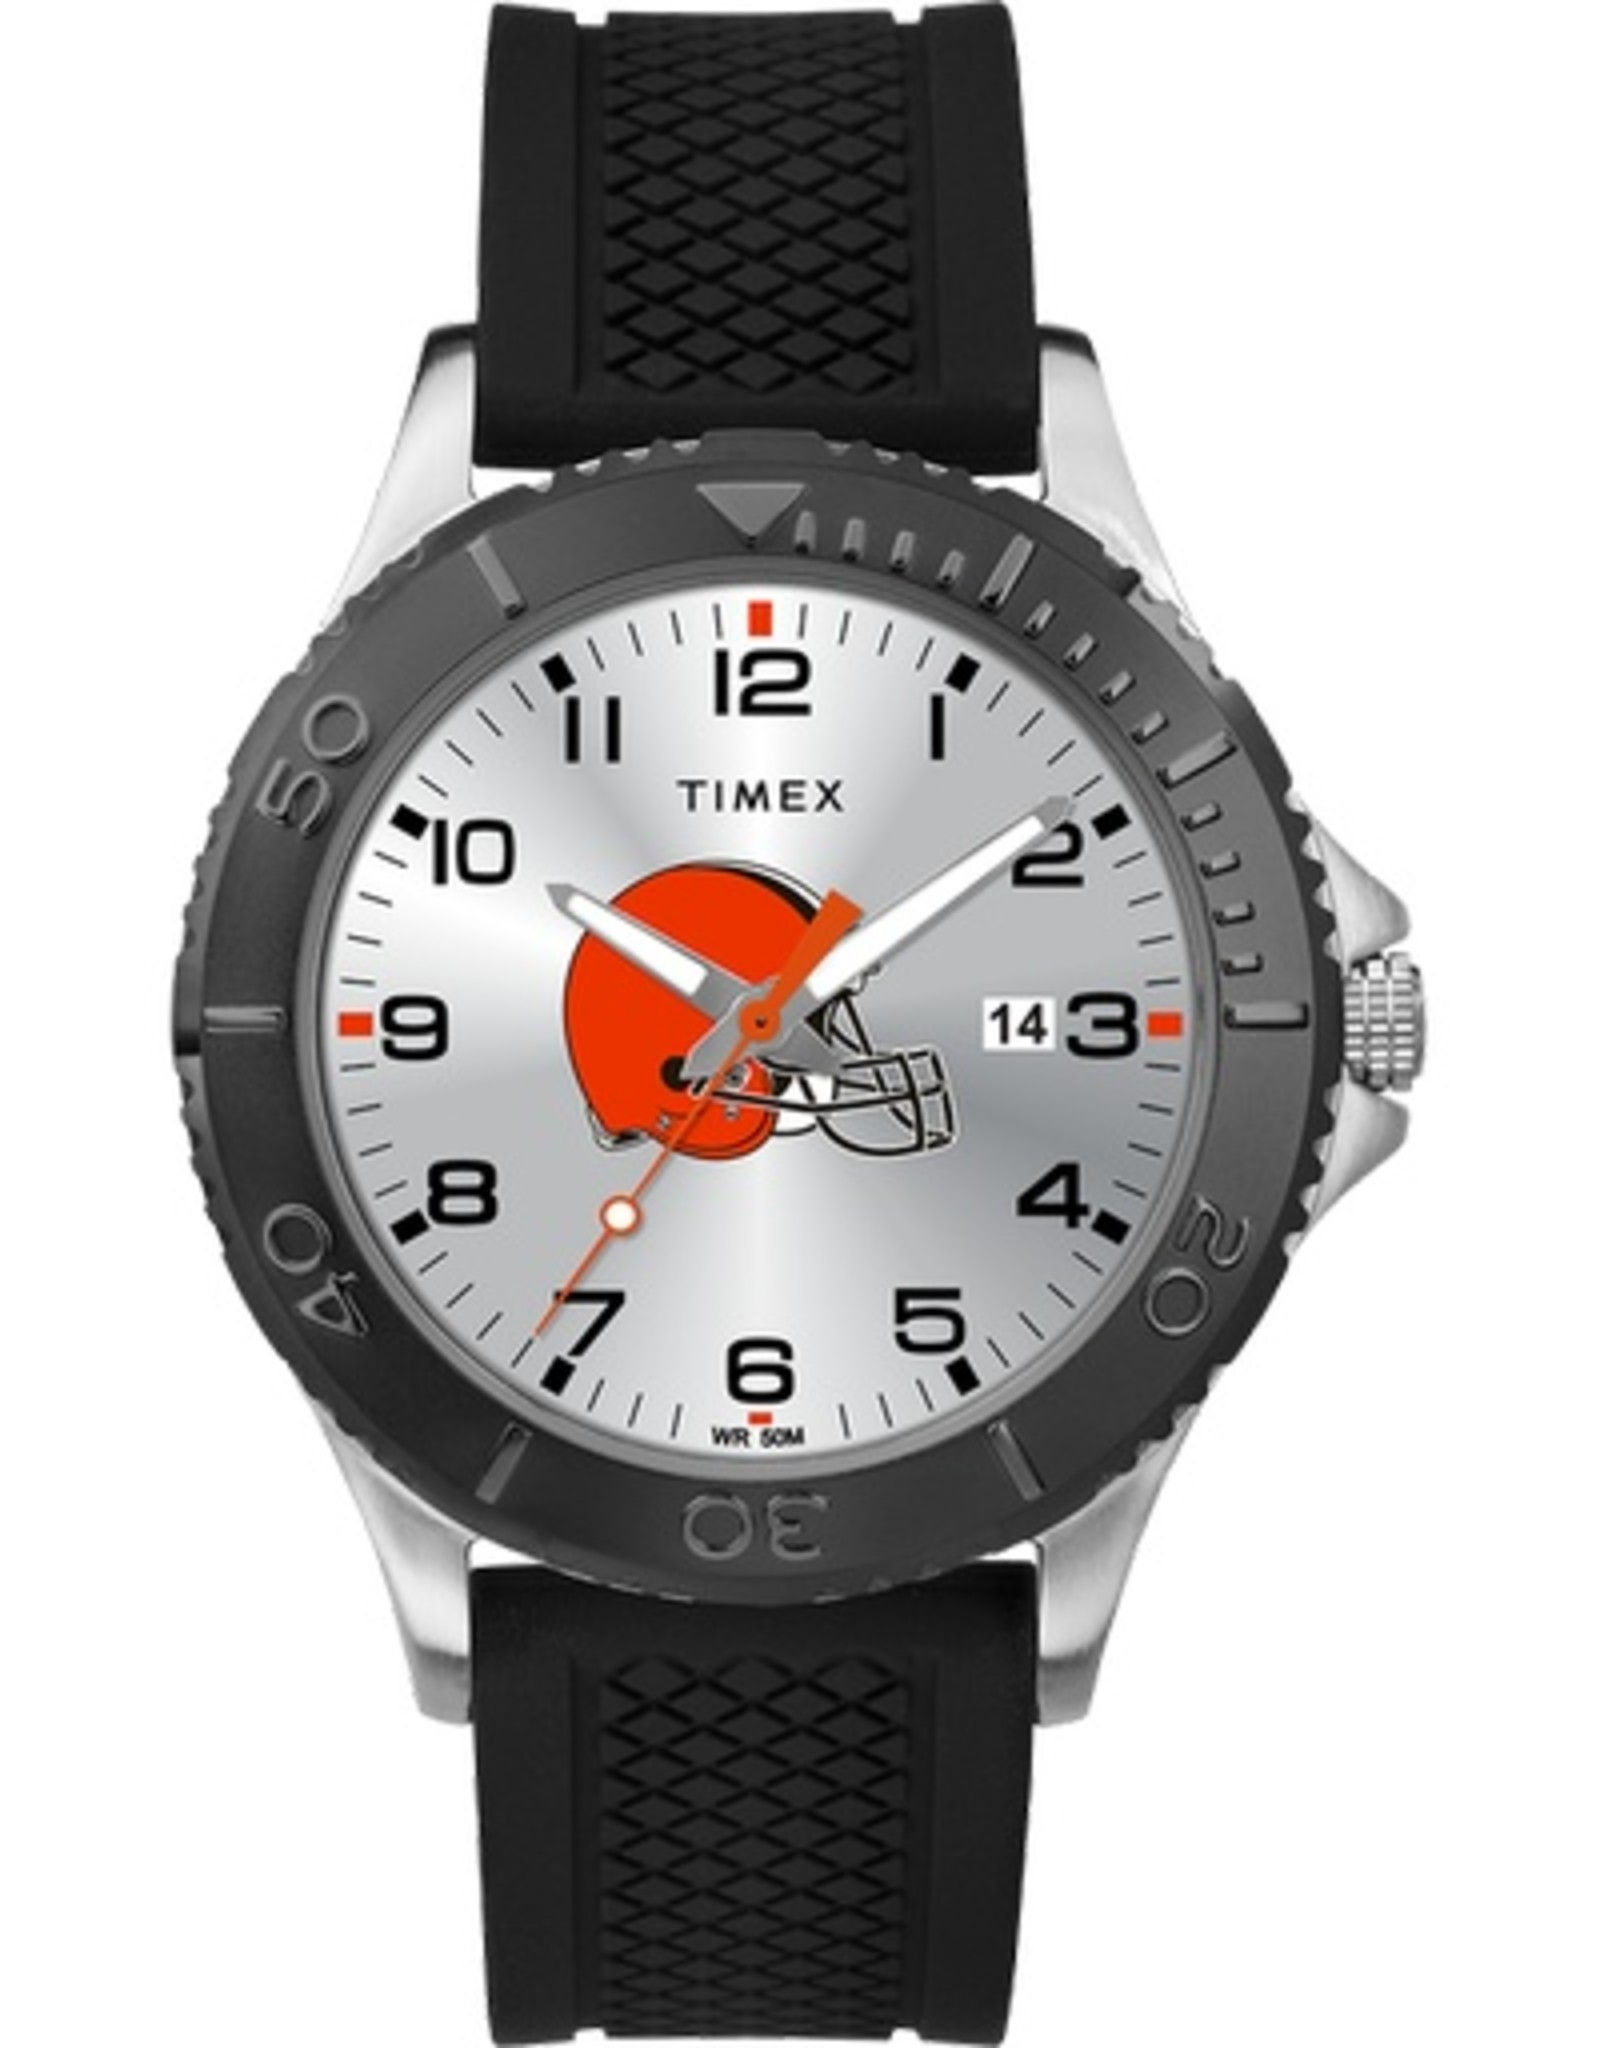 Cleveland Browns Timex Gamer Watch